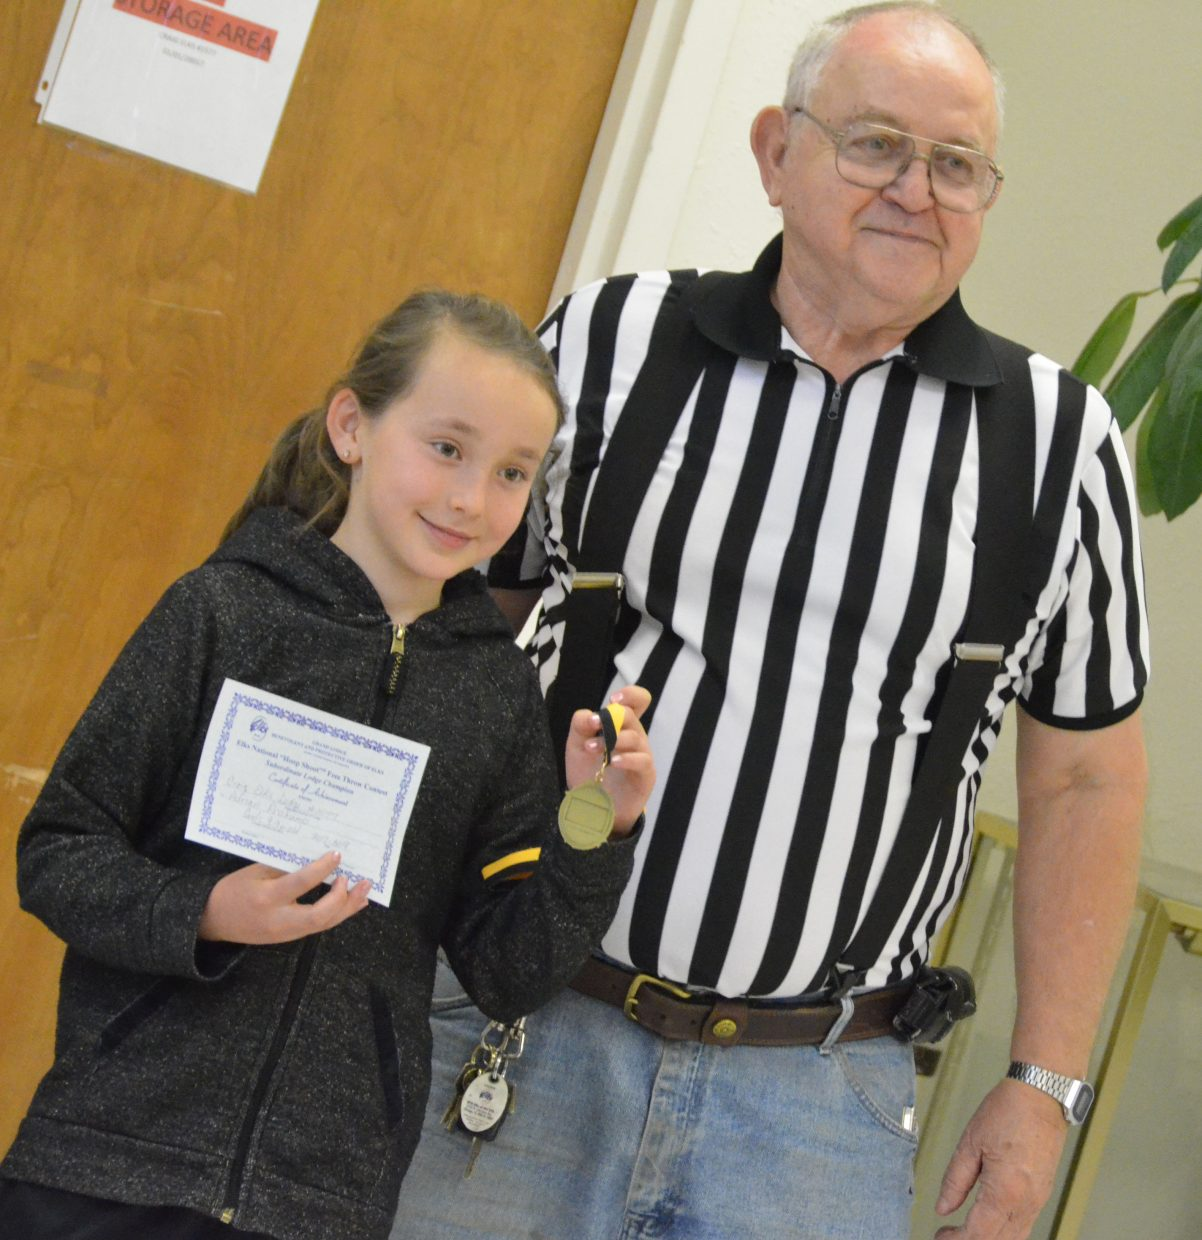 Frank Sadvar provides Adrian Profumo a first-place medal as the local winner of 8- and 9-year-old girls winner of the Elks National Hoop Shoot Free Throw Contest.